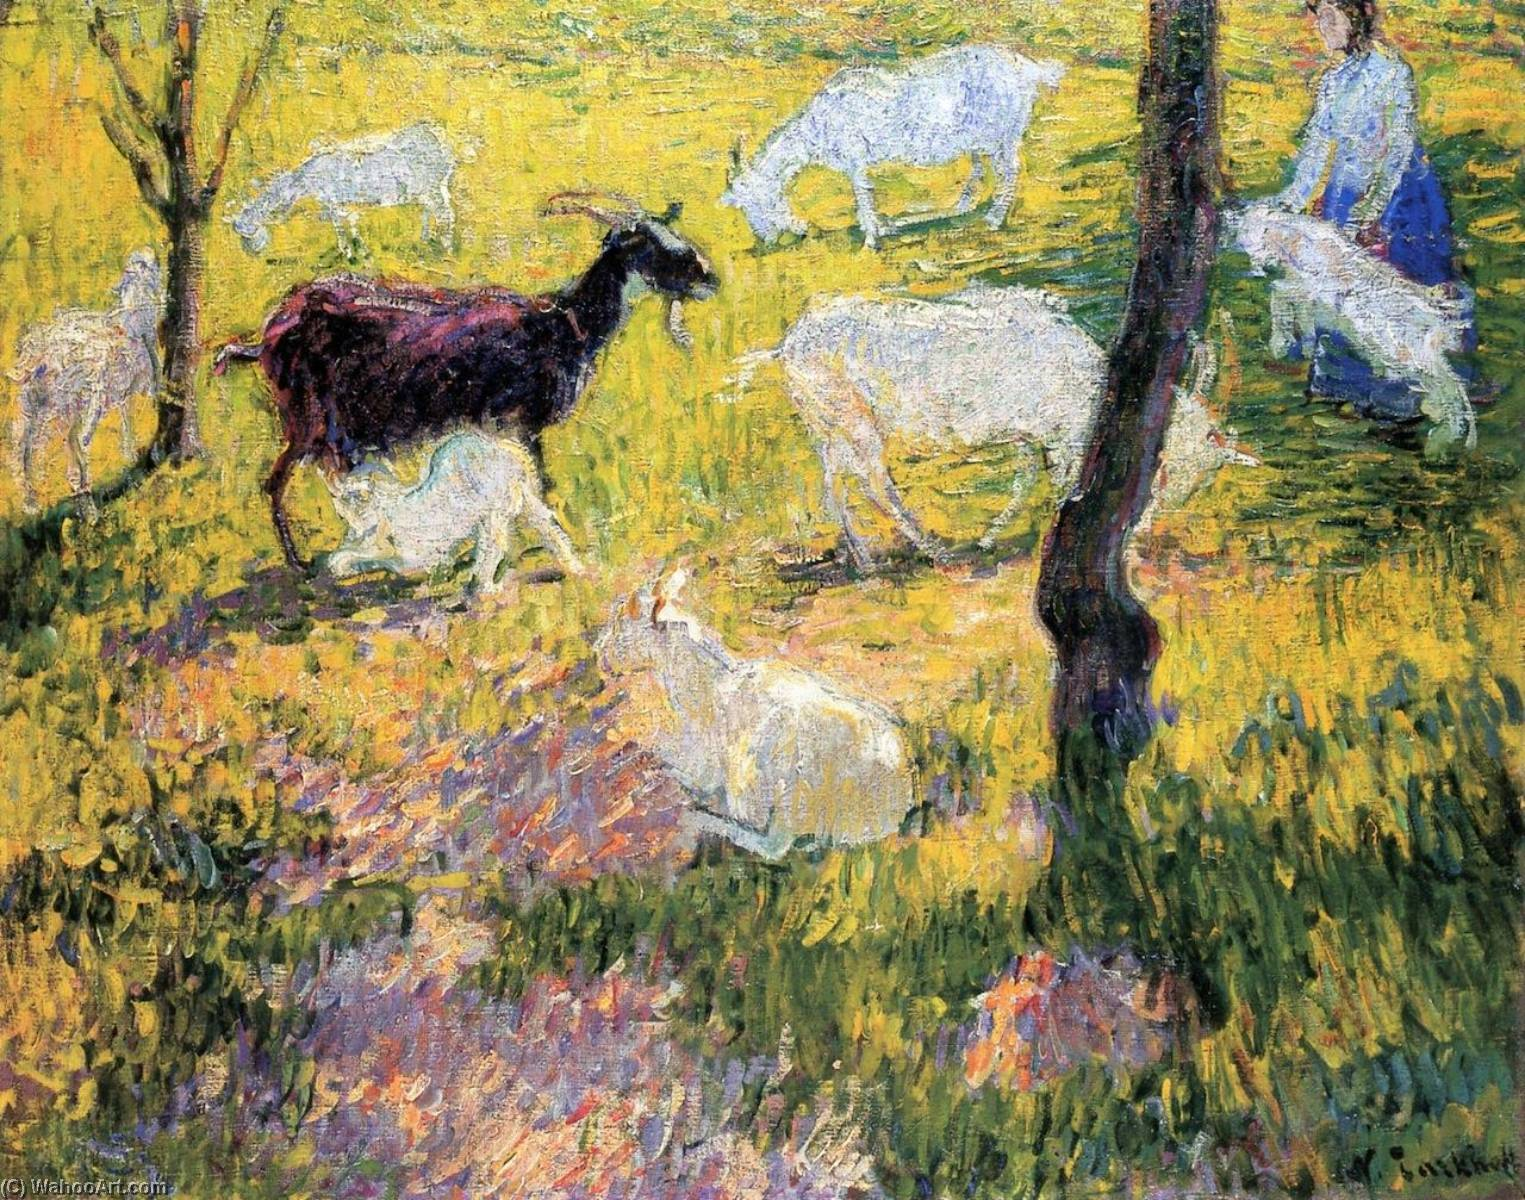 Goats in the Field, Oil On Canvas by Nicolas Tarkhoff (1871-1930)